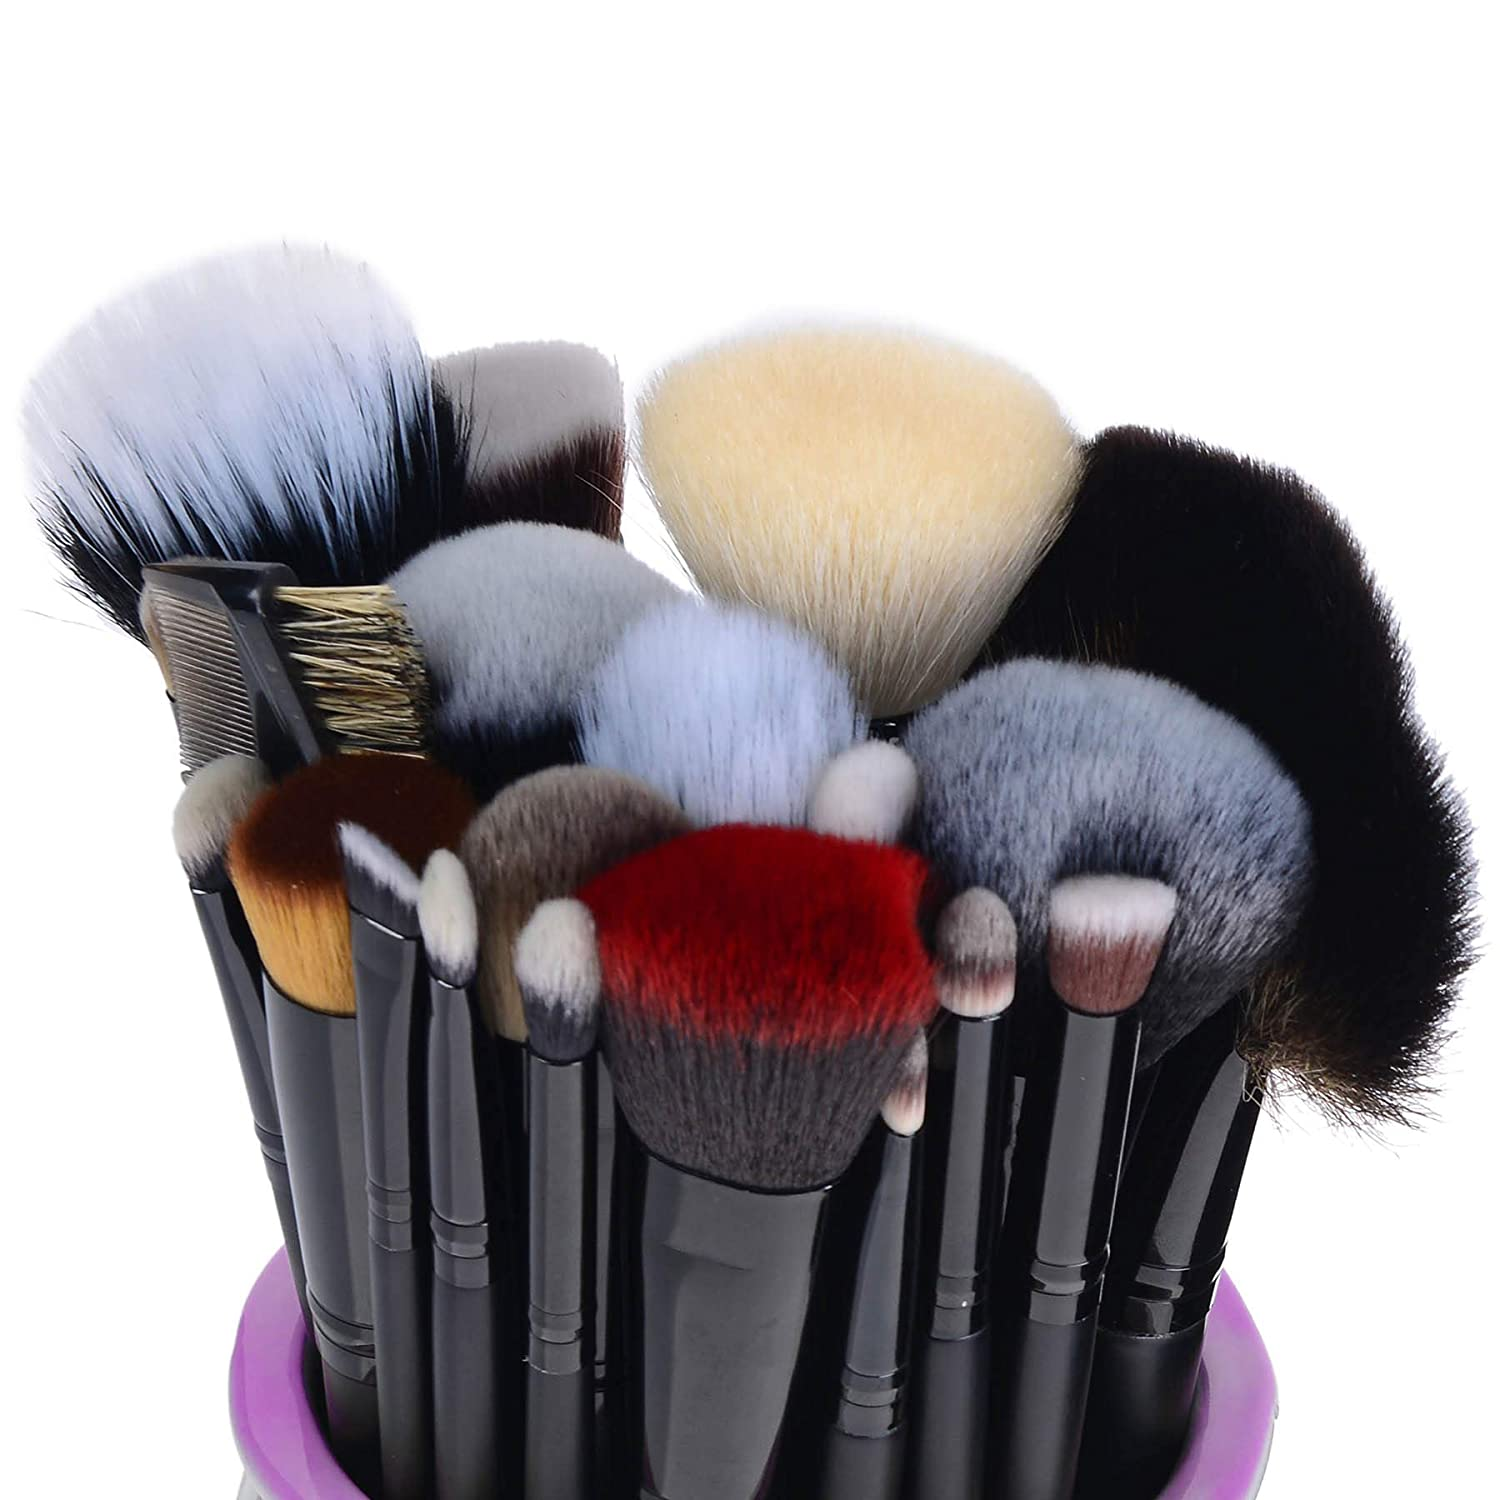 Shany Masterpiece pro signature brush set